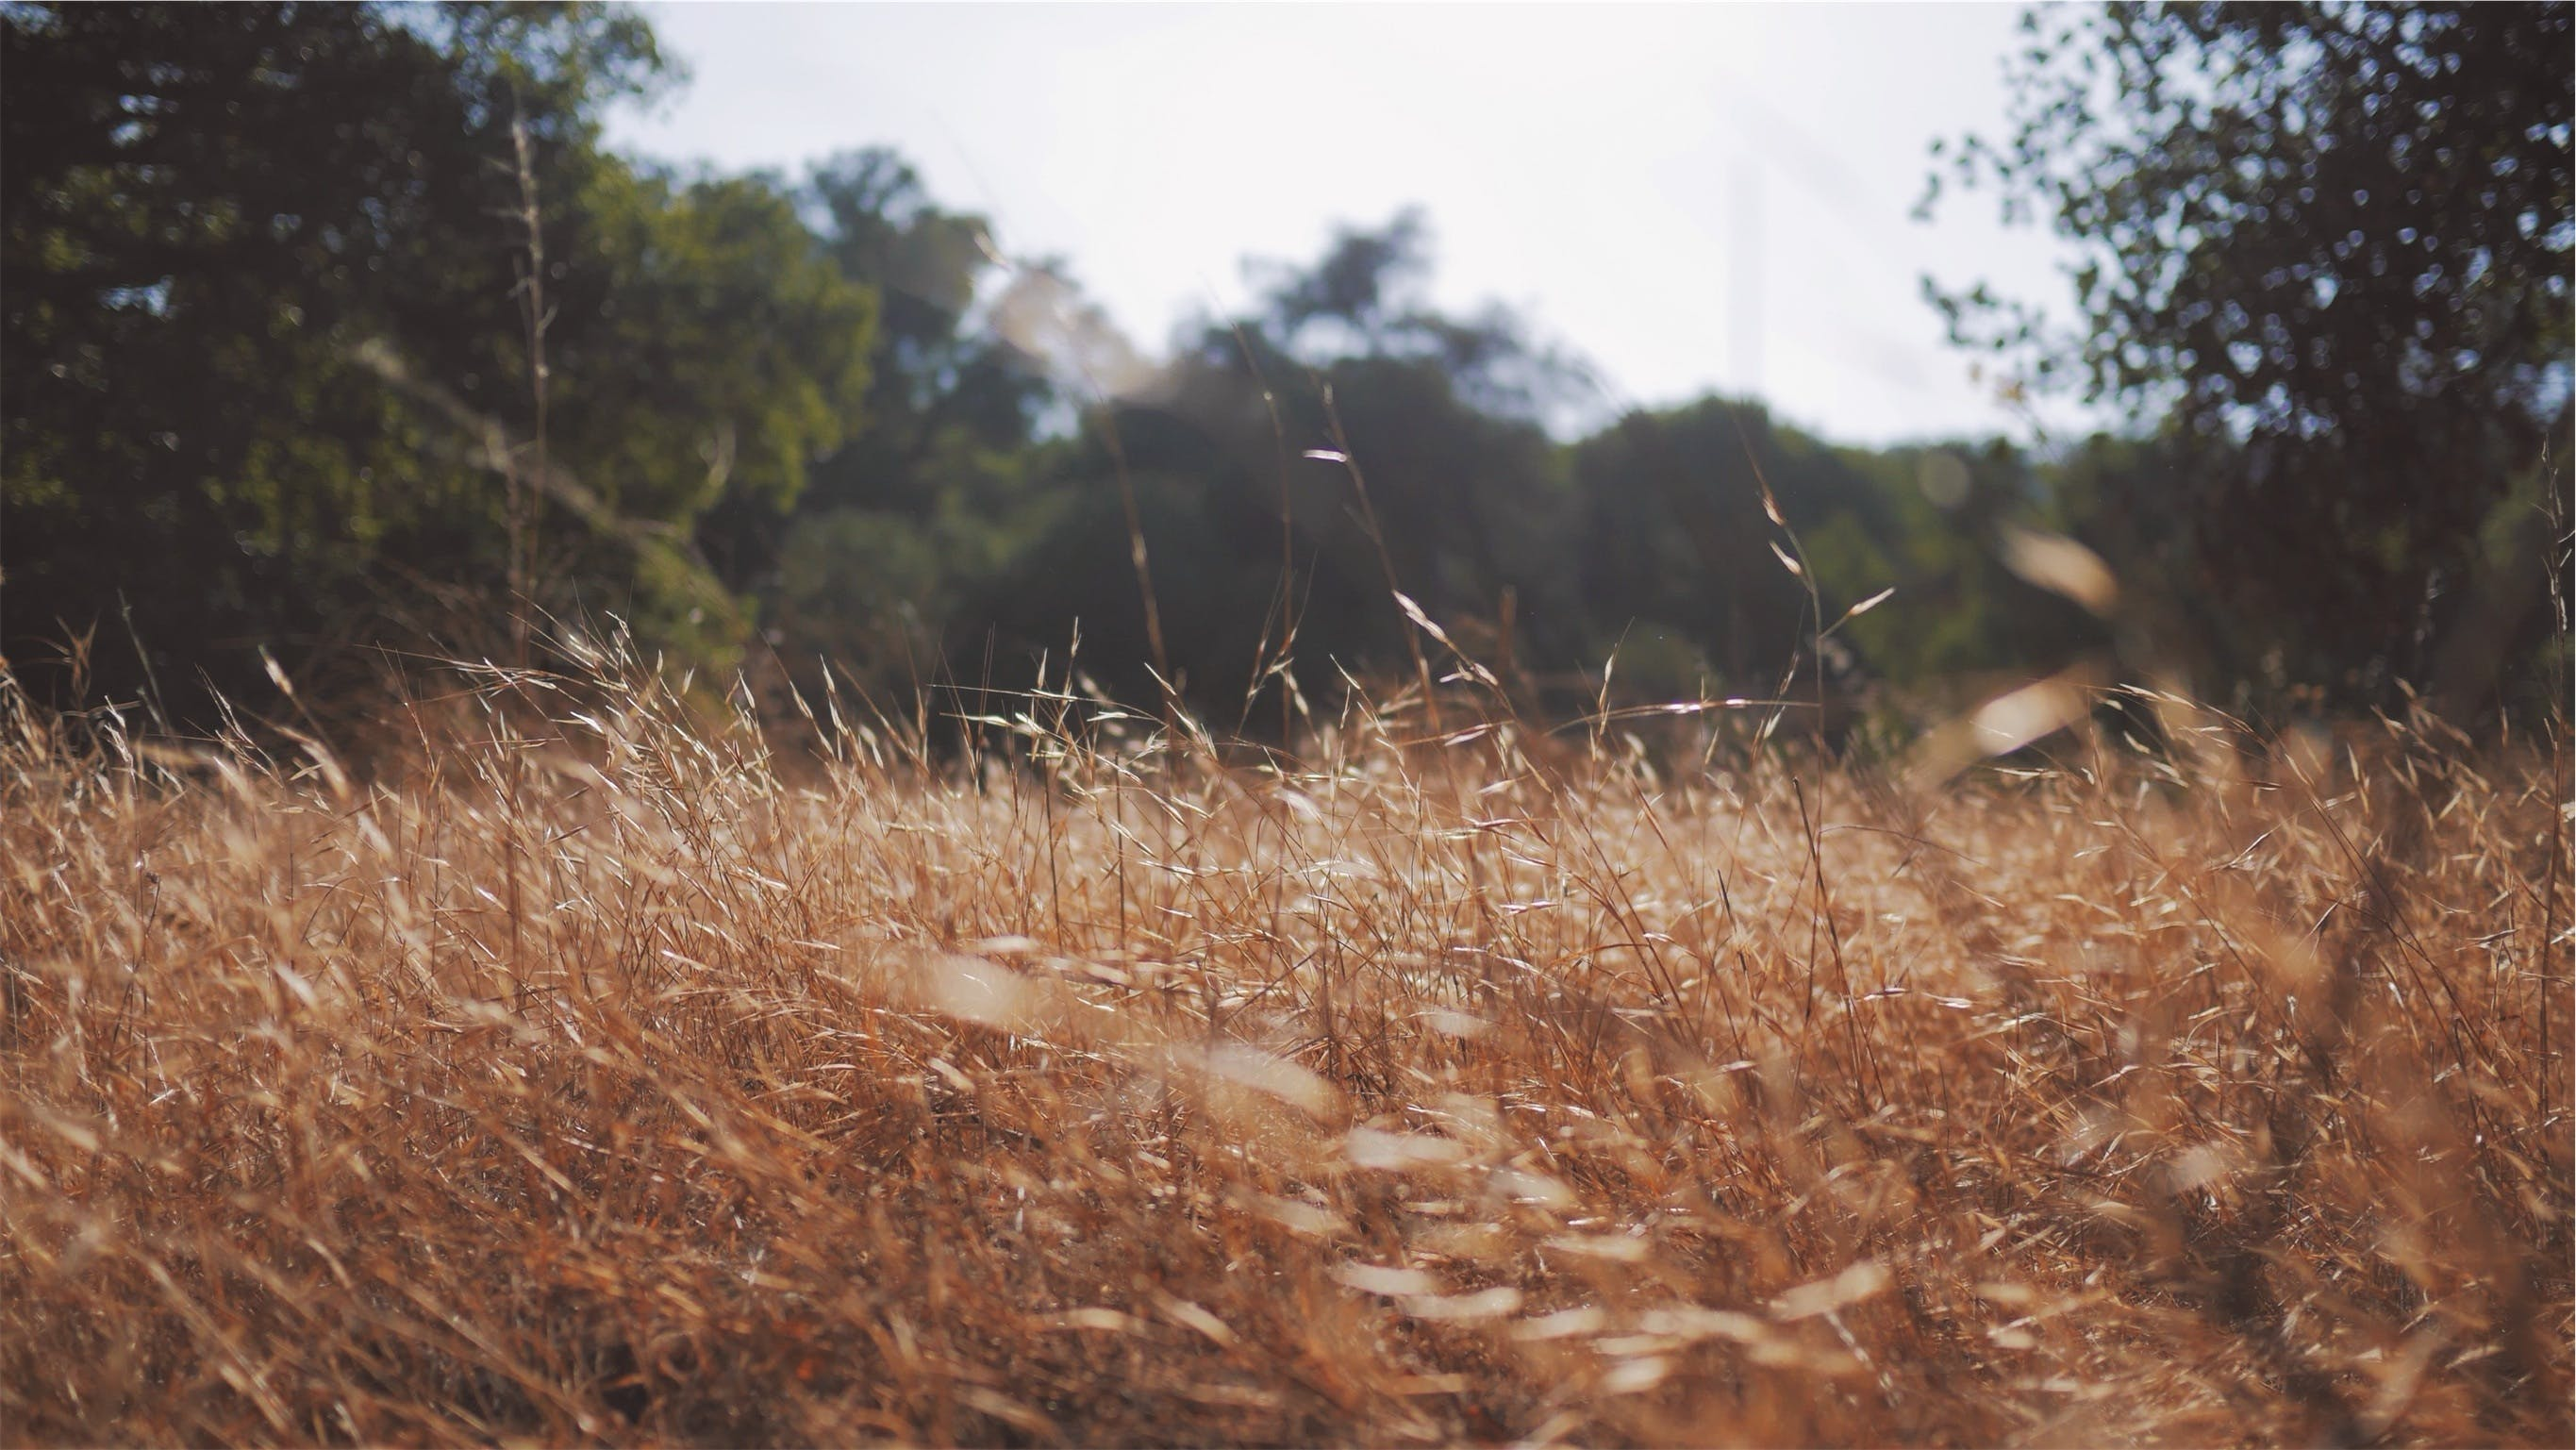 Free stock photo of nature, field, summer, dry